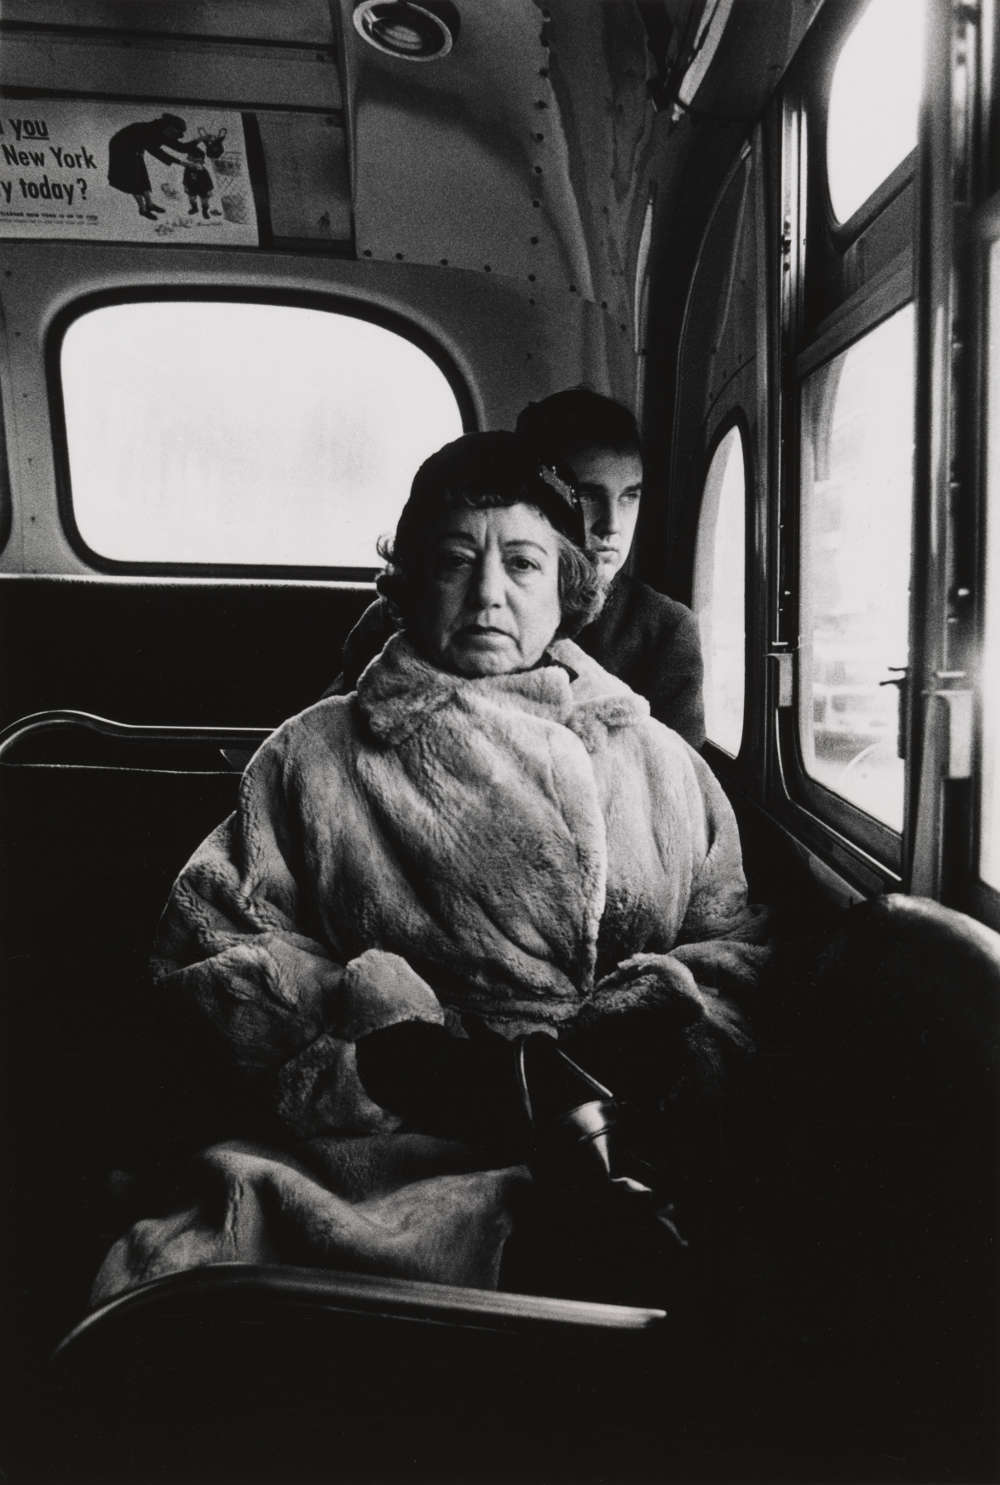 Lady on a bus, N.Y.C. 1957. 8 1/2 × 5 3/4 in. (21.6 × 14.6 cm) Gift of Danielle and David Ganek, 2005. Courtesy The Metropolitan Museum of Art, New York. Copyright © The Estate of Diane Arbus, LLC. All Rights Reserved